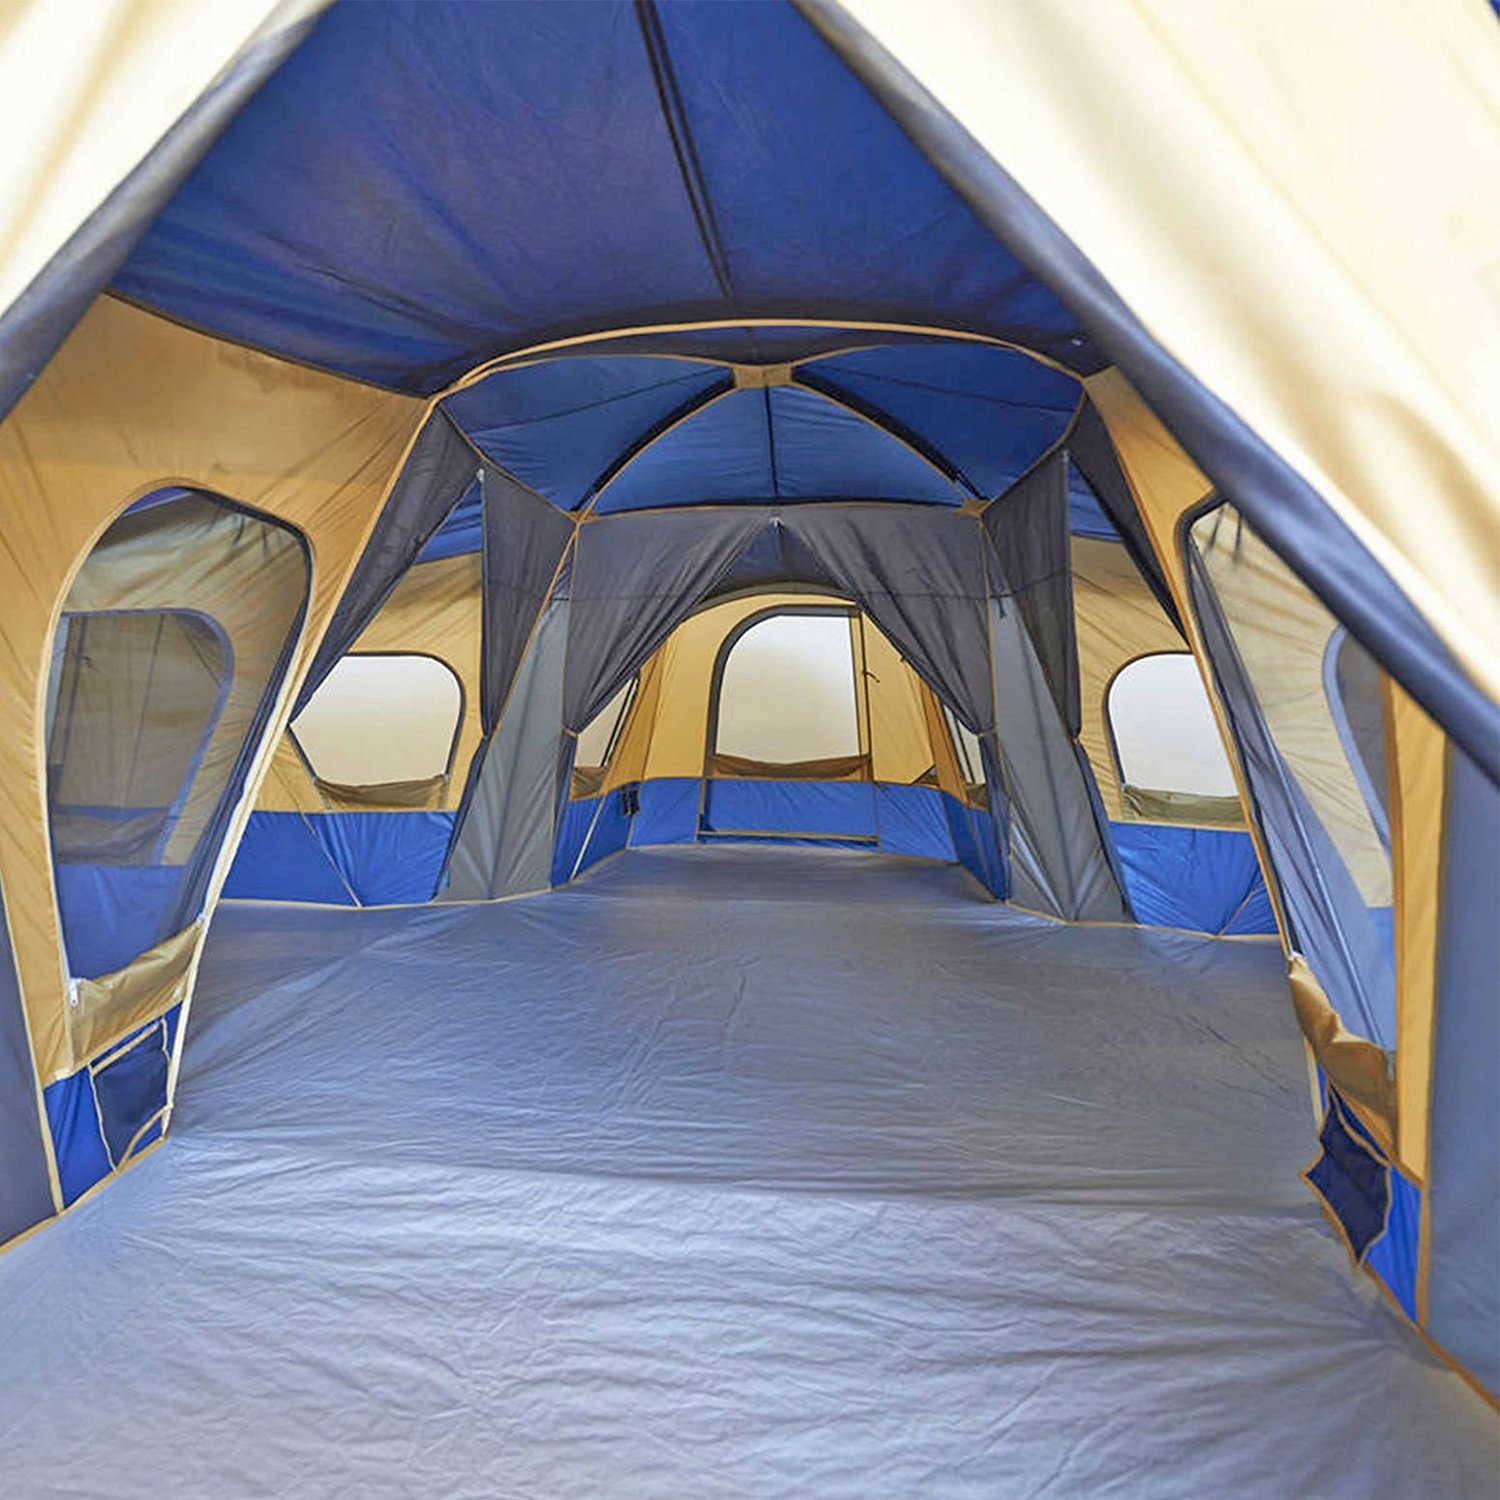 & Ozark Trail Base Camp 14-Person Cabin Tent